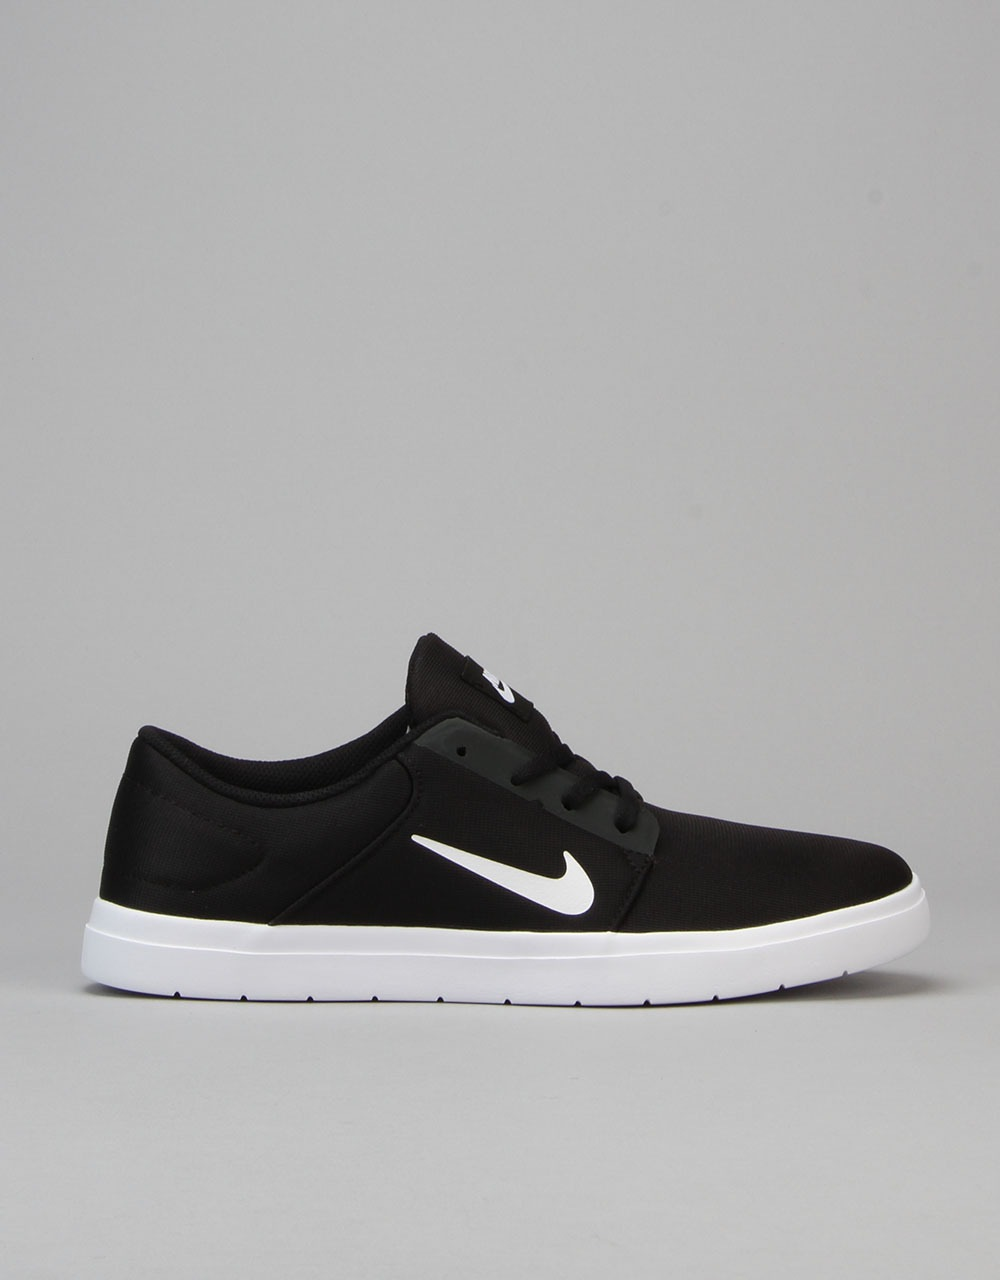 Nike SB Portmore Ultralight Renew Skate Shoes - Black/White-Anthracite | Skate  Shoes | Mens Skateboarding Trainers & Footwear | Route One